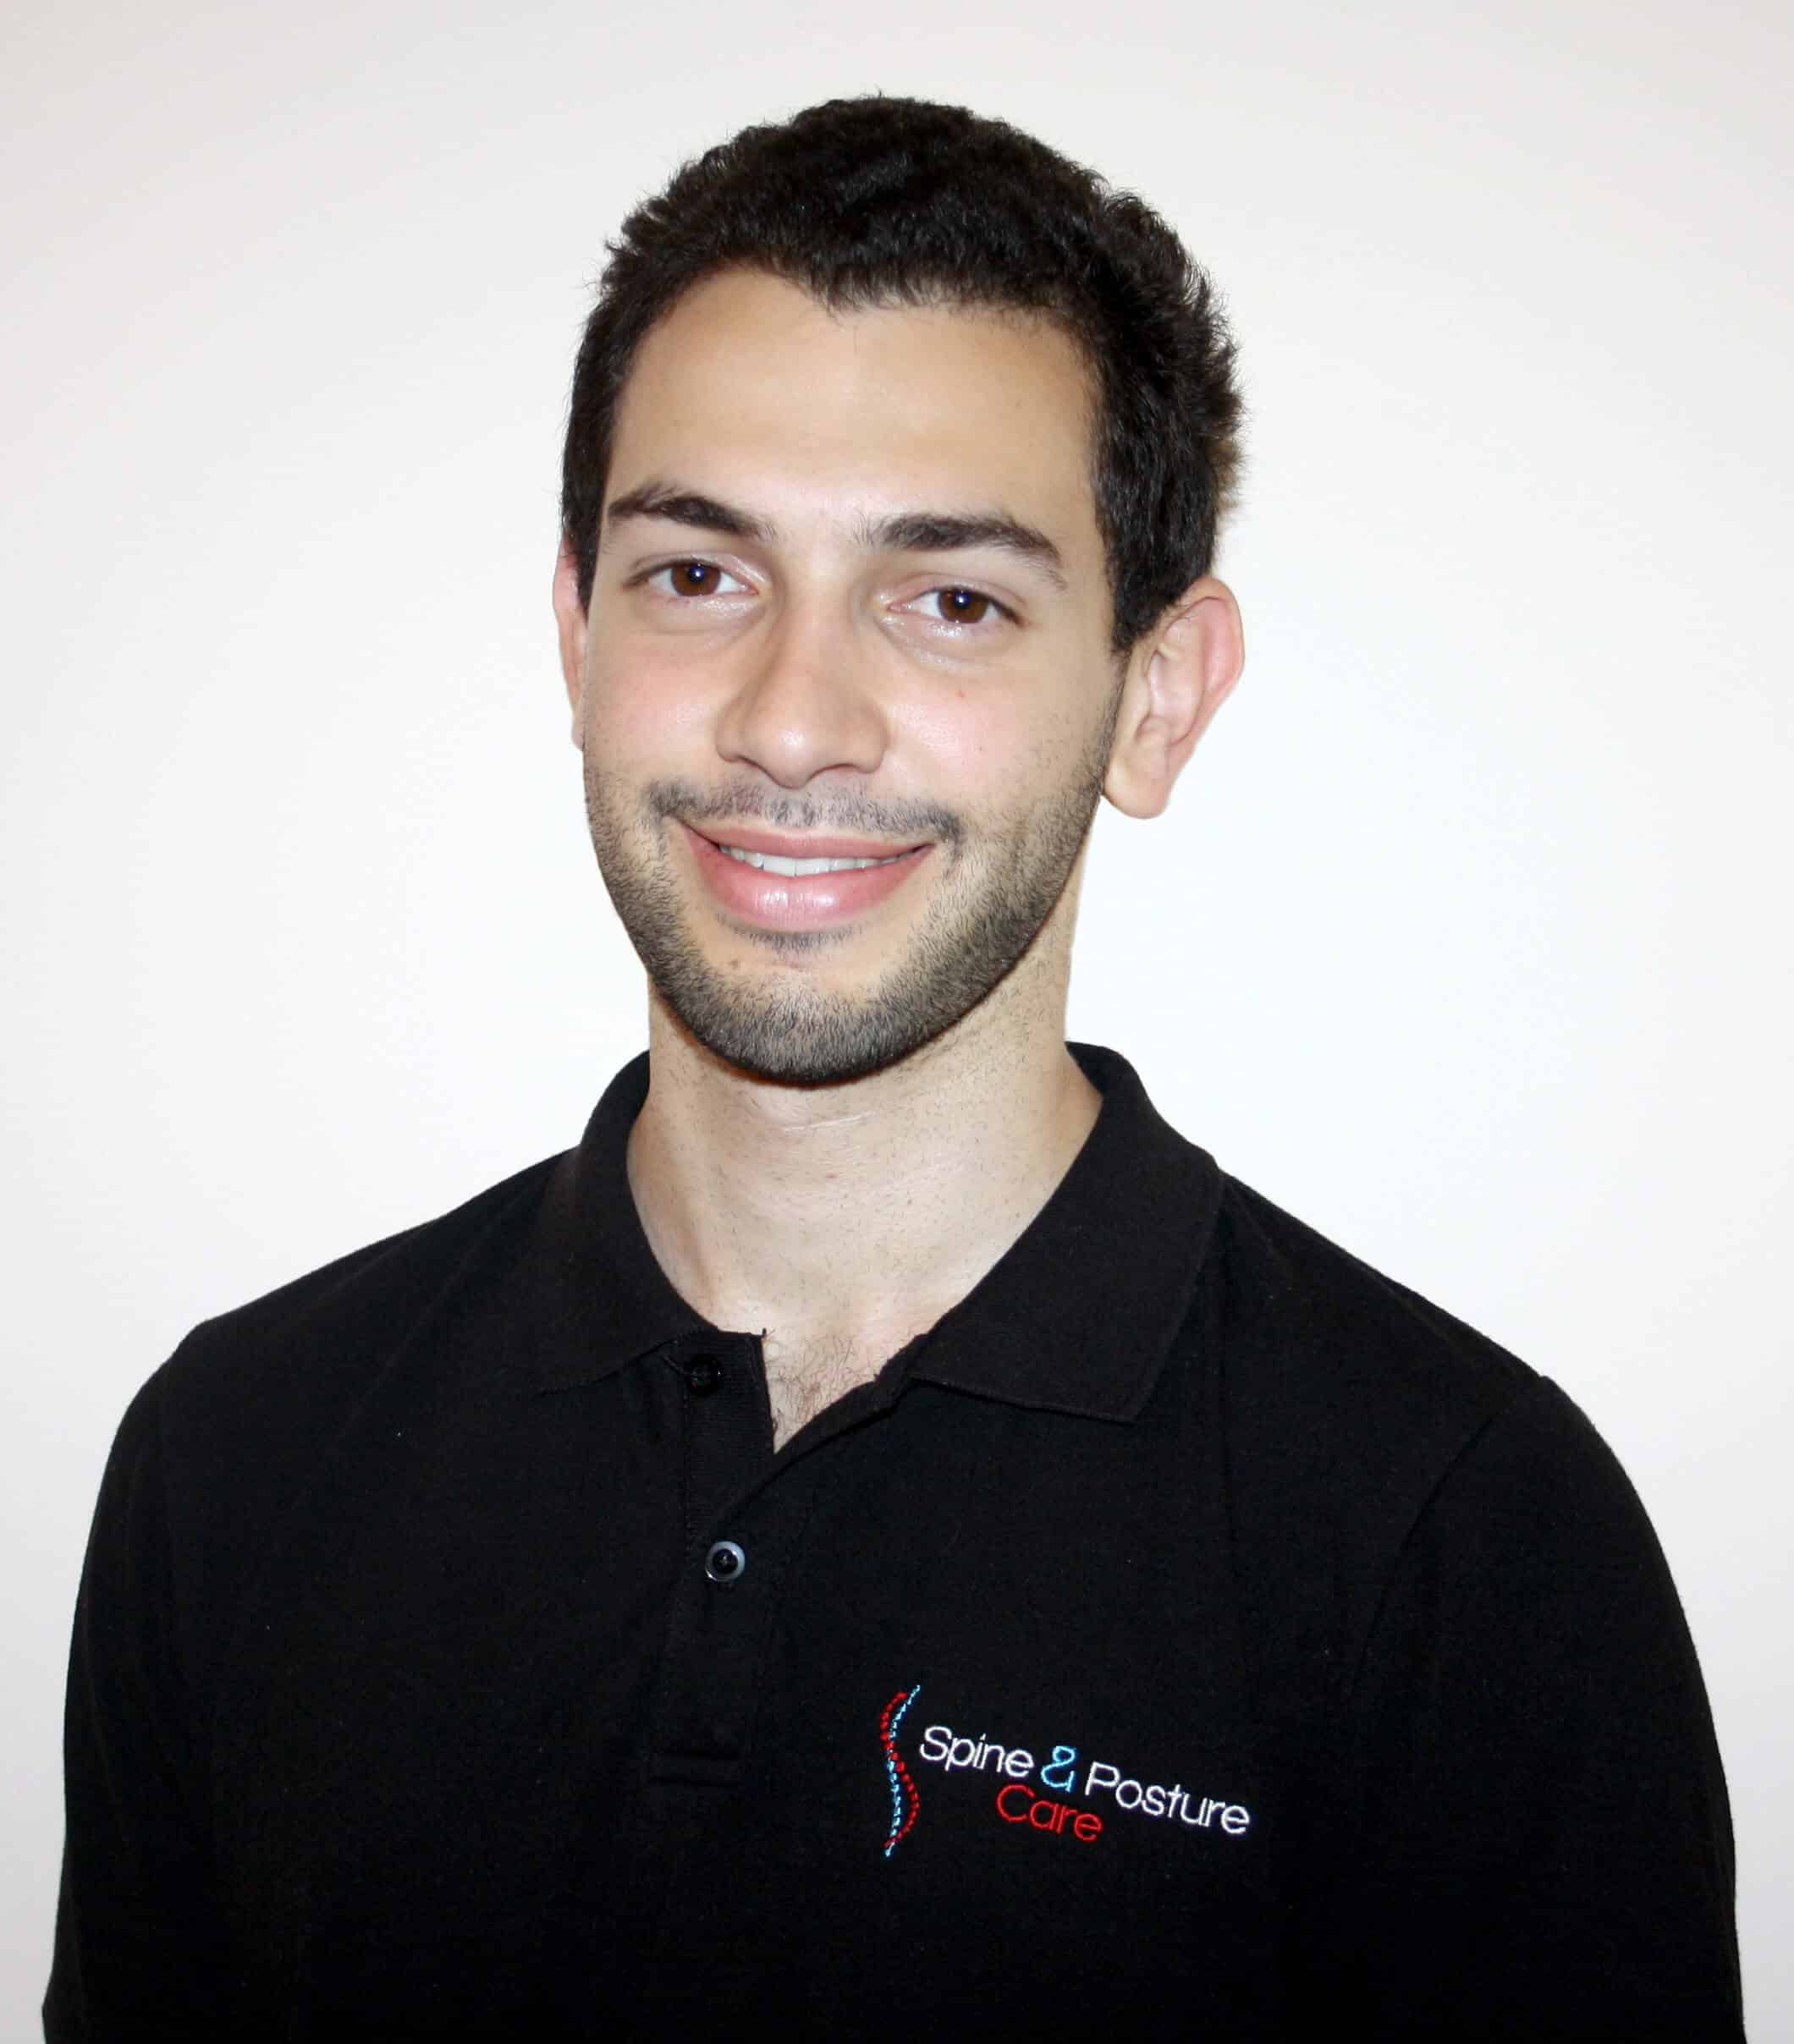 Patrick El-Hayek head physiotherapist of Spine and Posture Care in Sydney CBD